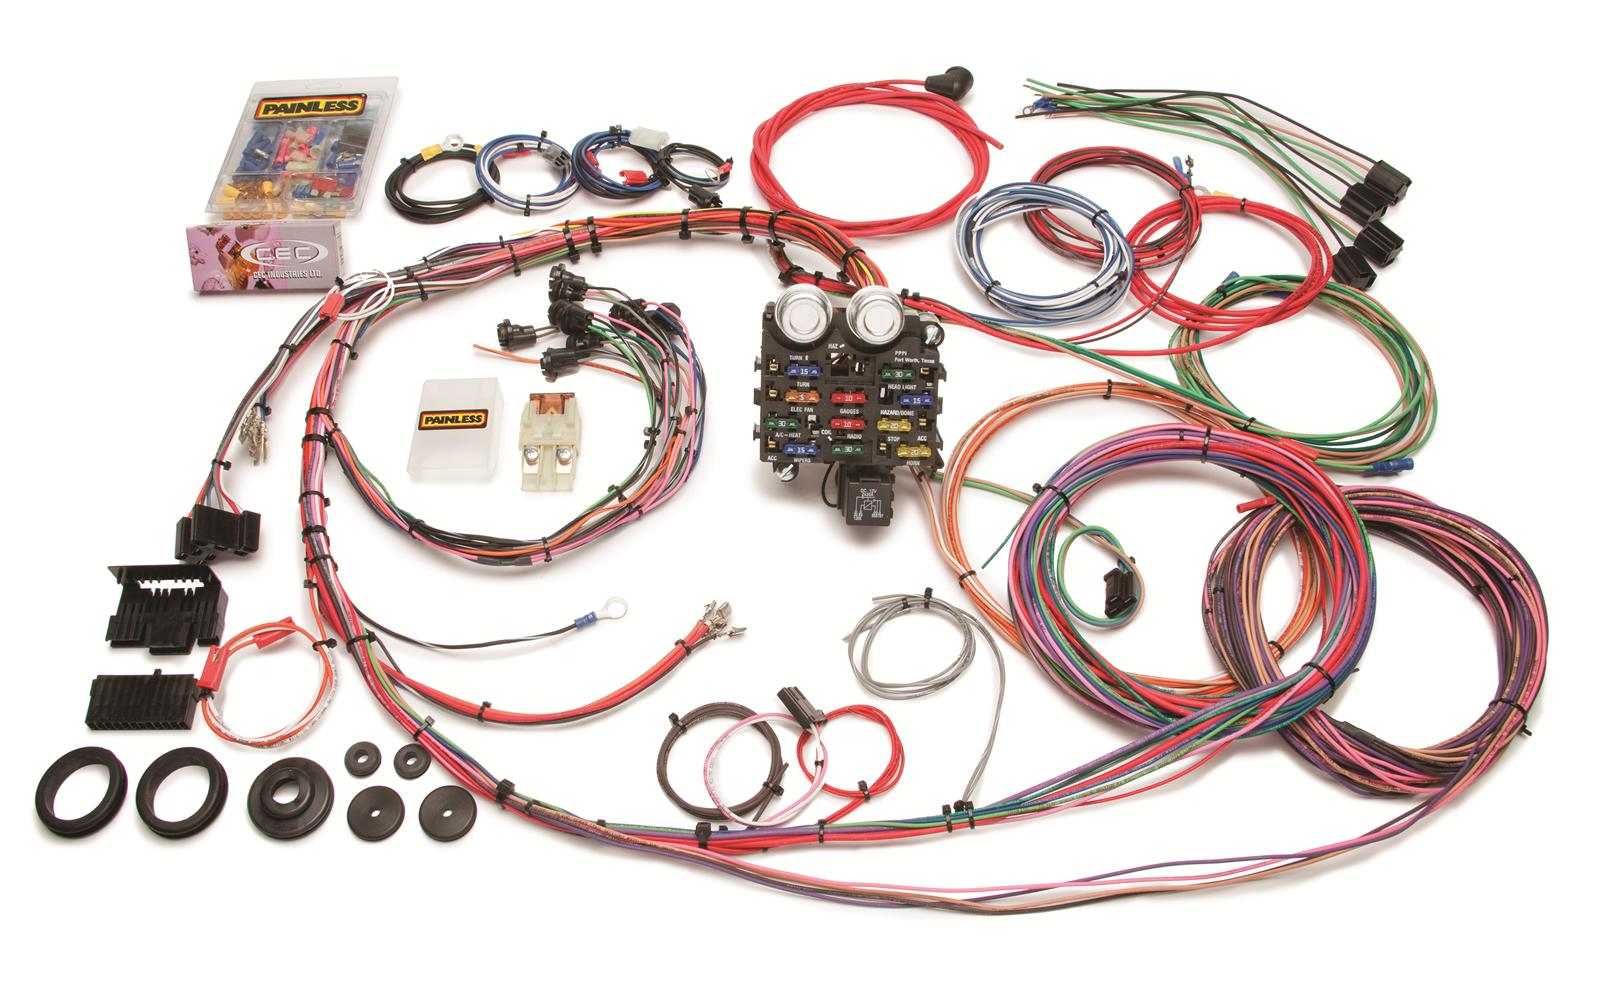 prf 10112_xl painless performance 19 circuit gmc chevy truck harnesses 10112 painless wiring harness 1953 chevy truck at reclaimingppi.co